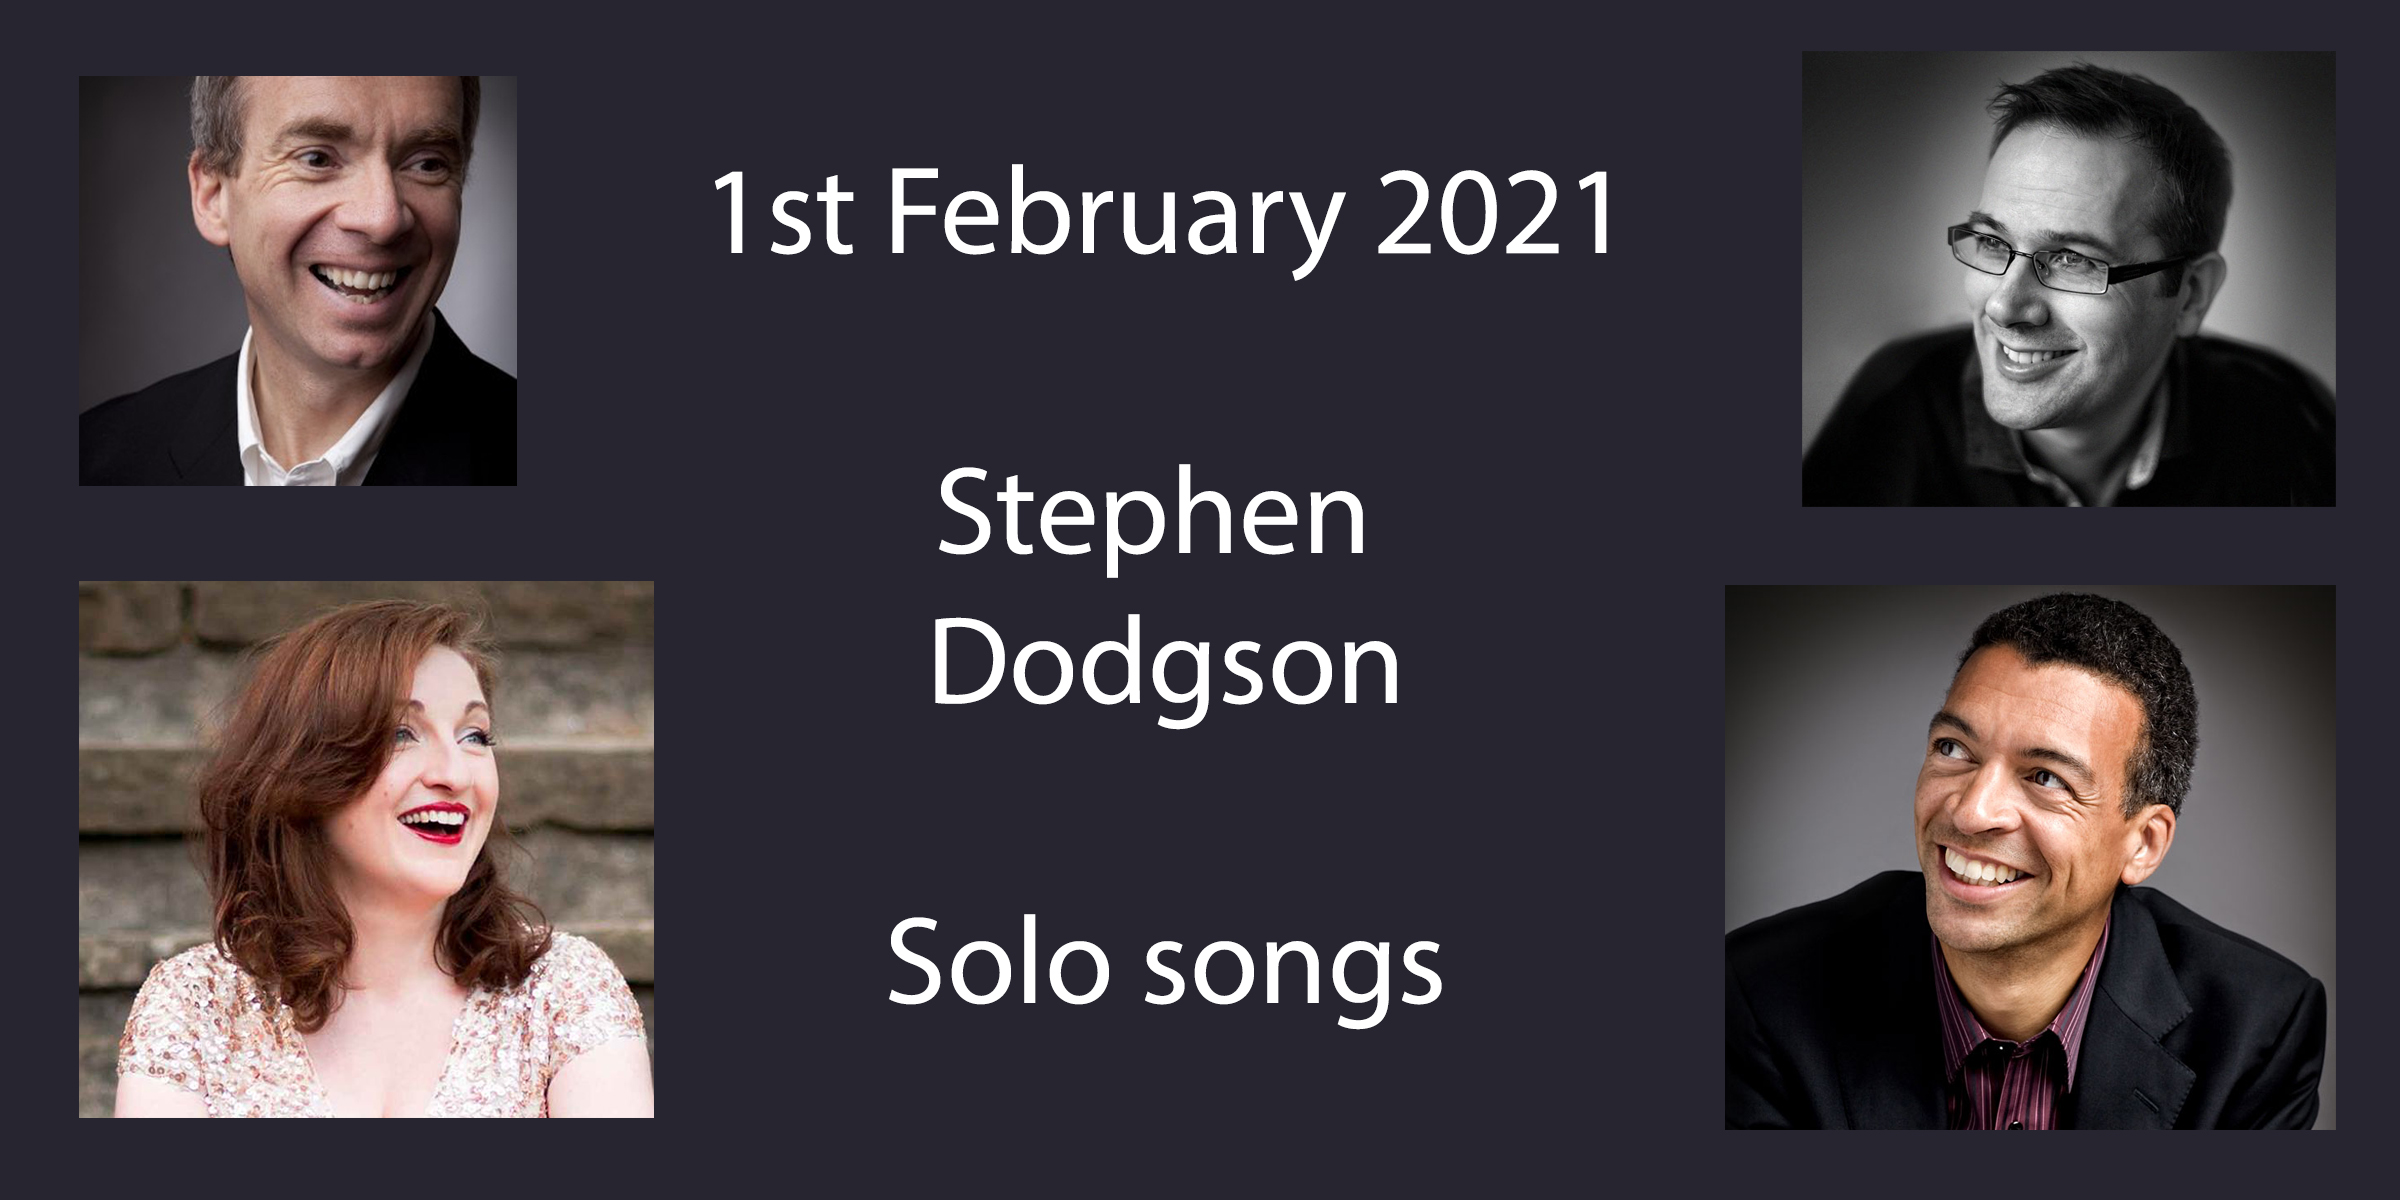 Dodgson – solo songs @ St Gabriel's Pimlico (streamed only)